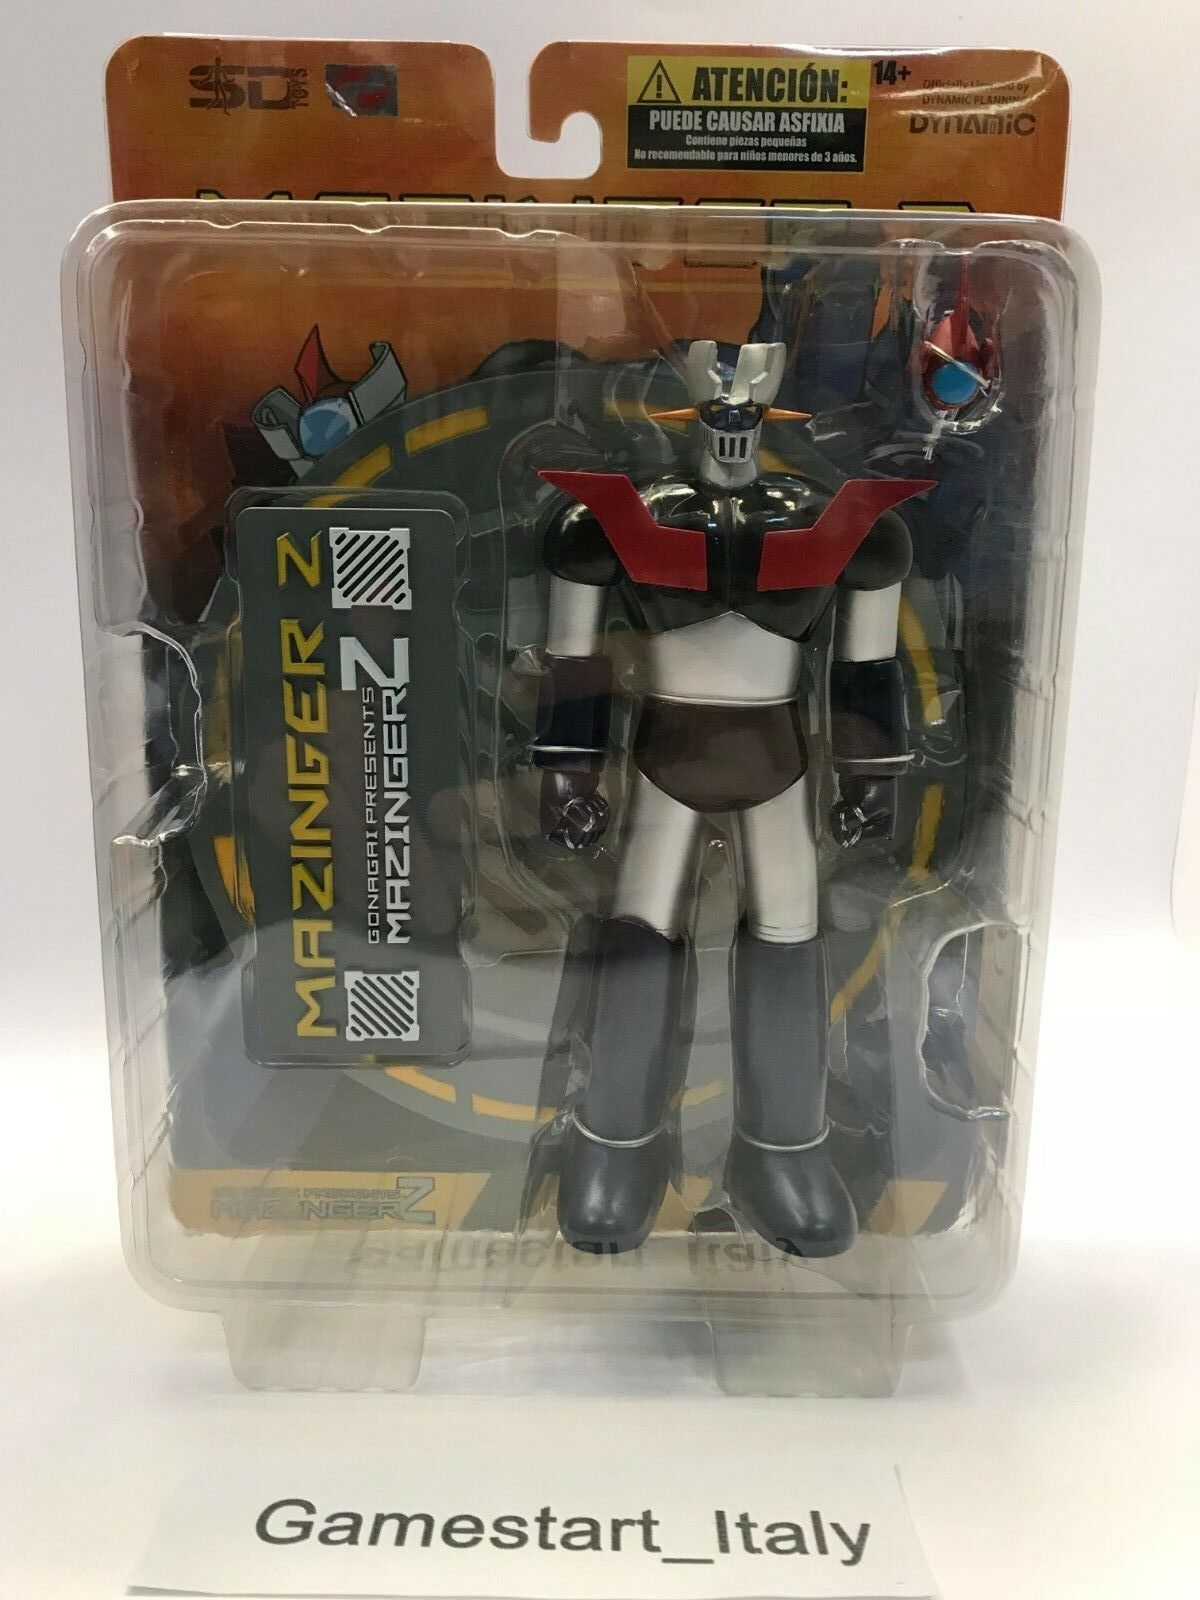 MAZINGER Z MAZINGA ROBOT ACTION FIGURE - NEW 18 CM OFFICIAL DYNAMIC SD TOYS